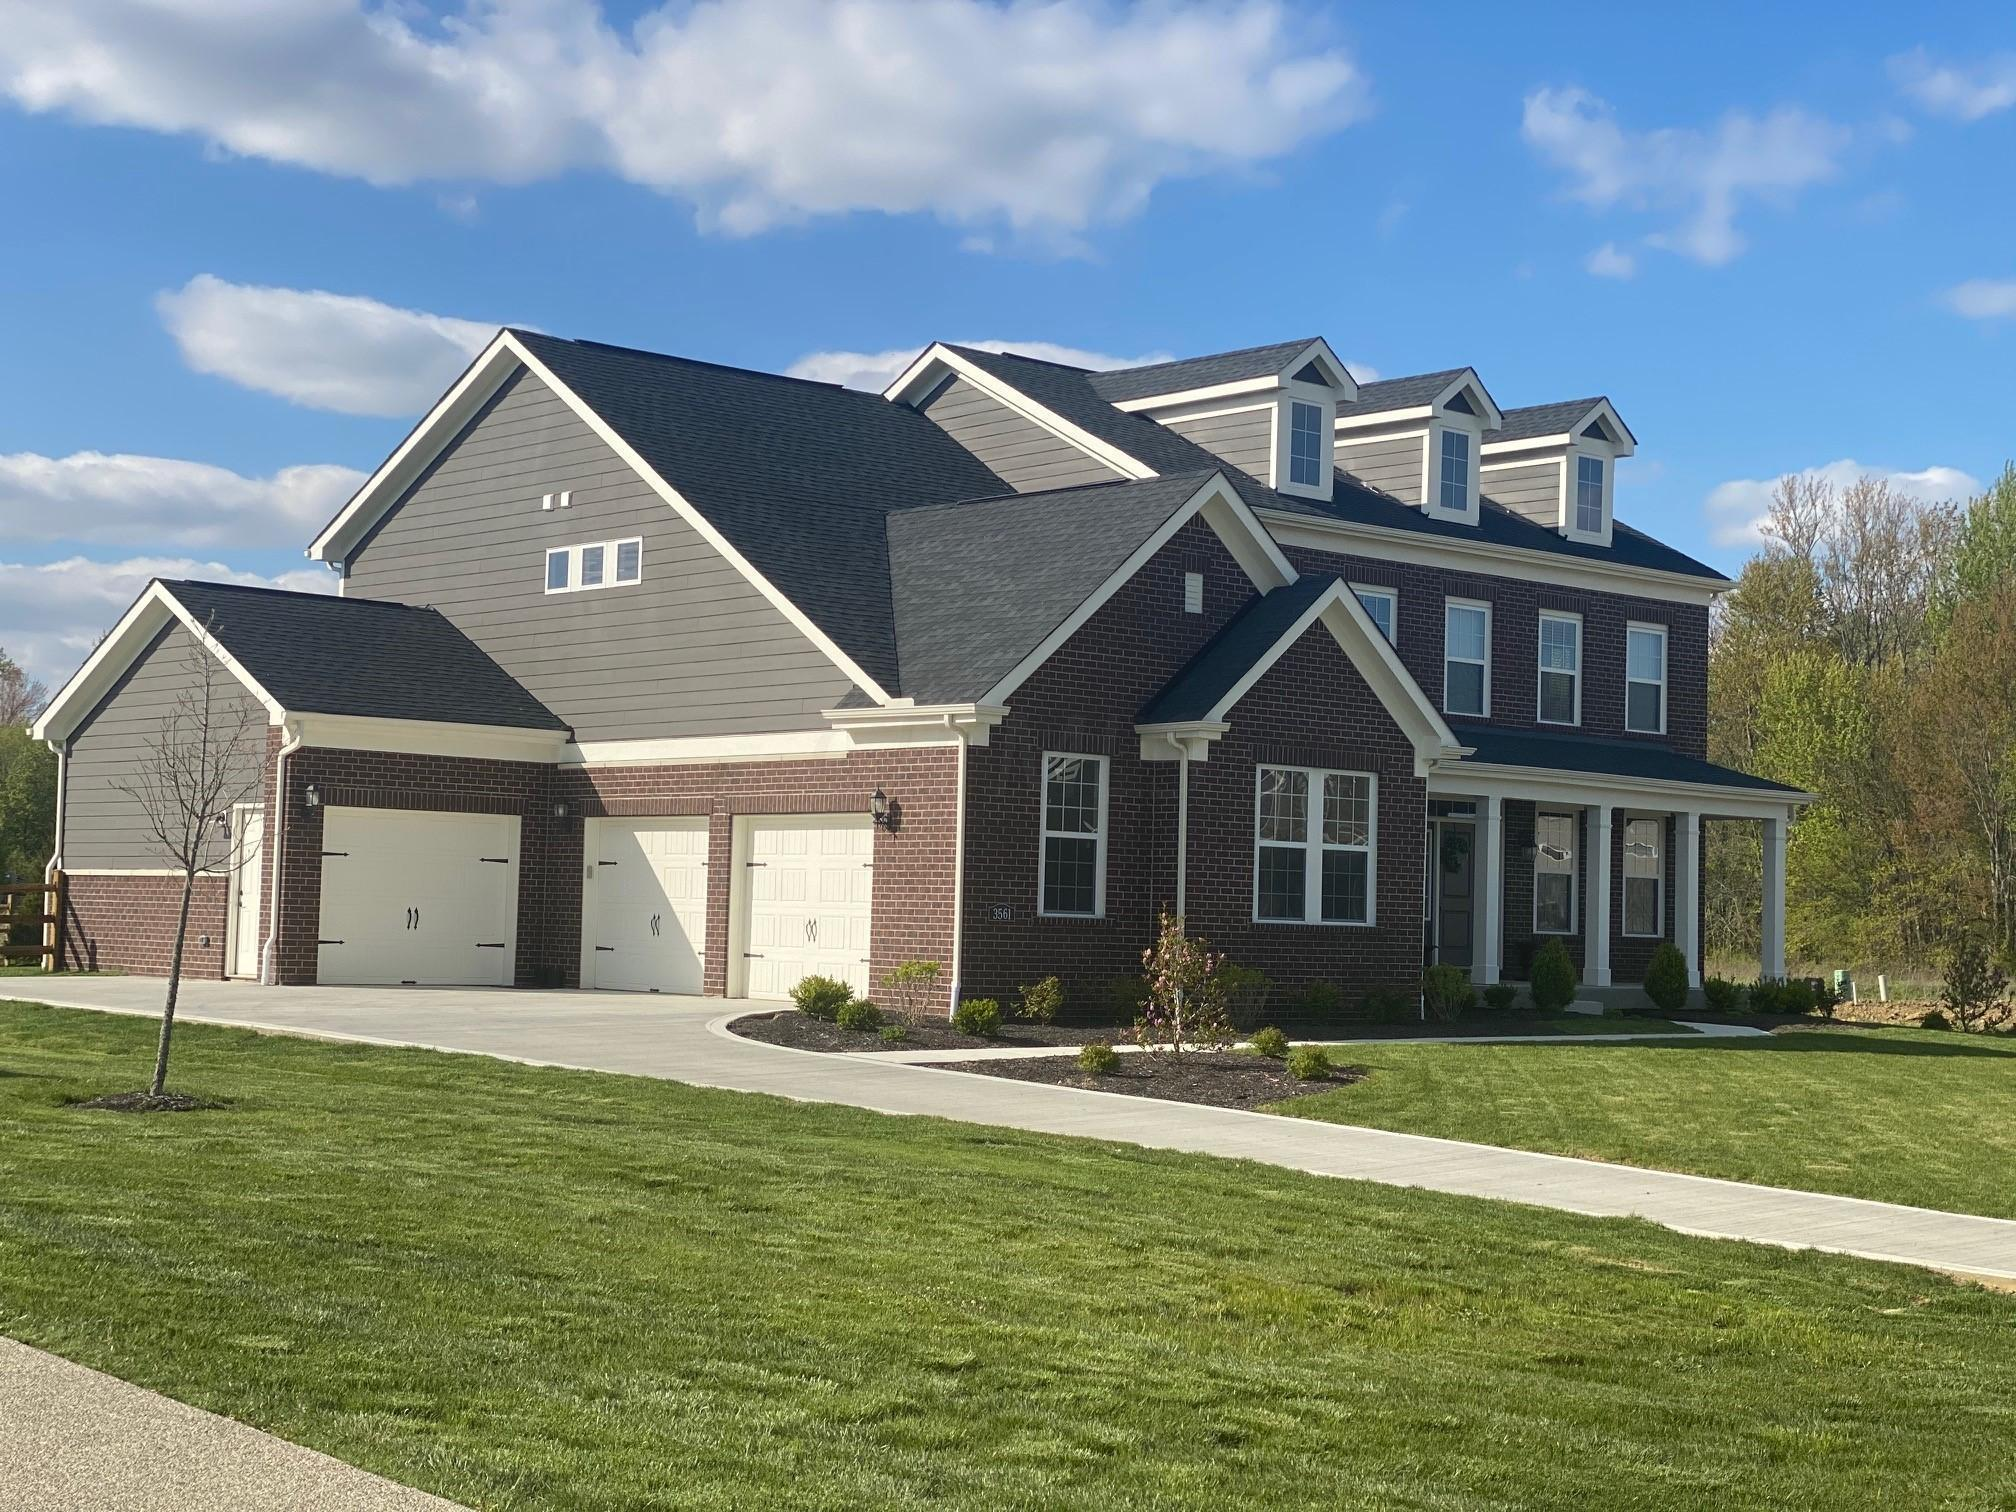 Photo of 3561 Switchgrass Court, Hilliard, OH 43026